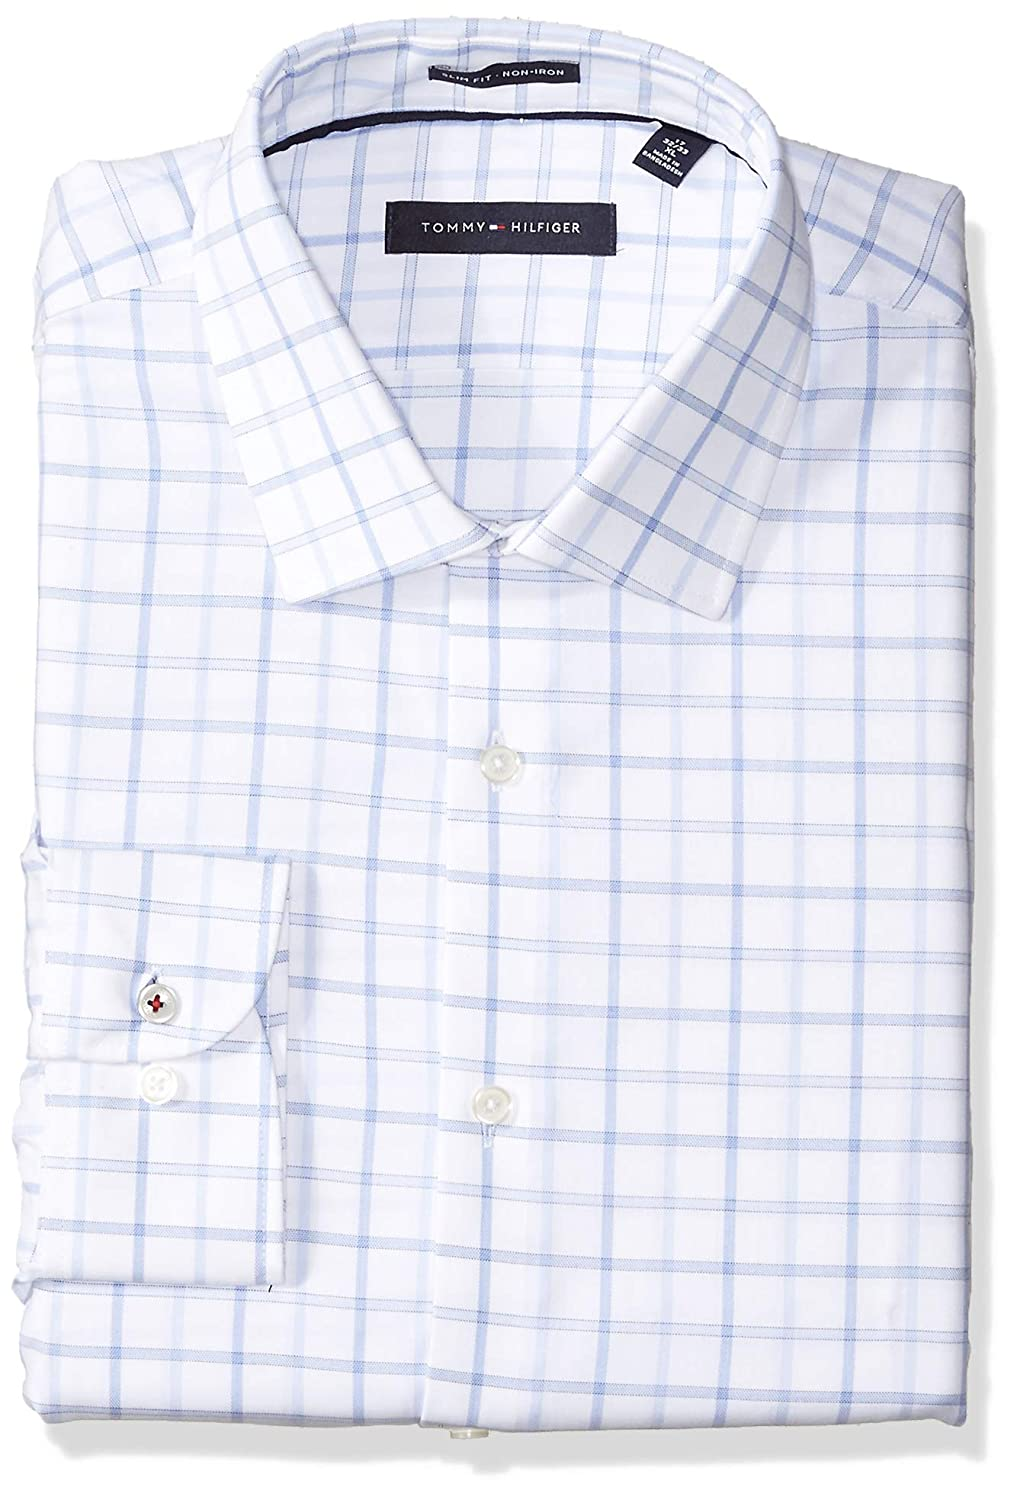 63e78177 Tommy Hilfiger Men's Dress Shirts Non Iron Slim Fit Check at Amazon Men's  Clothing store: